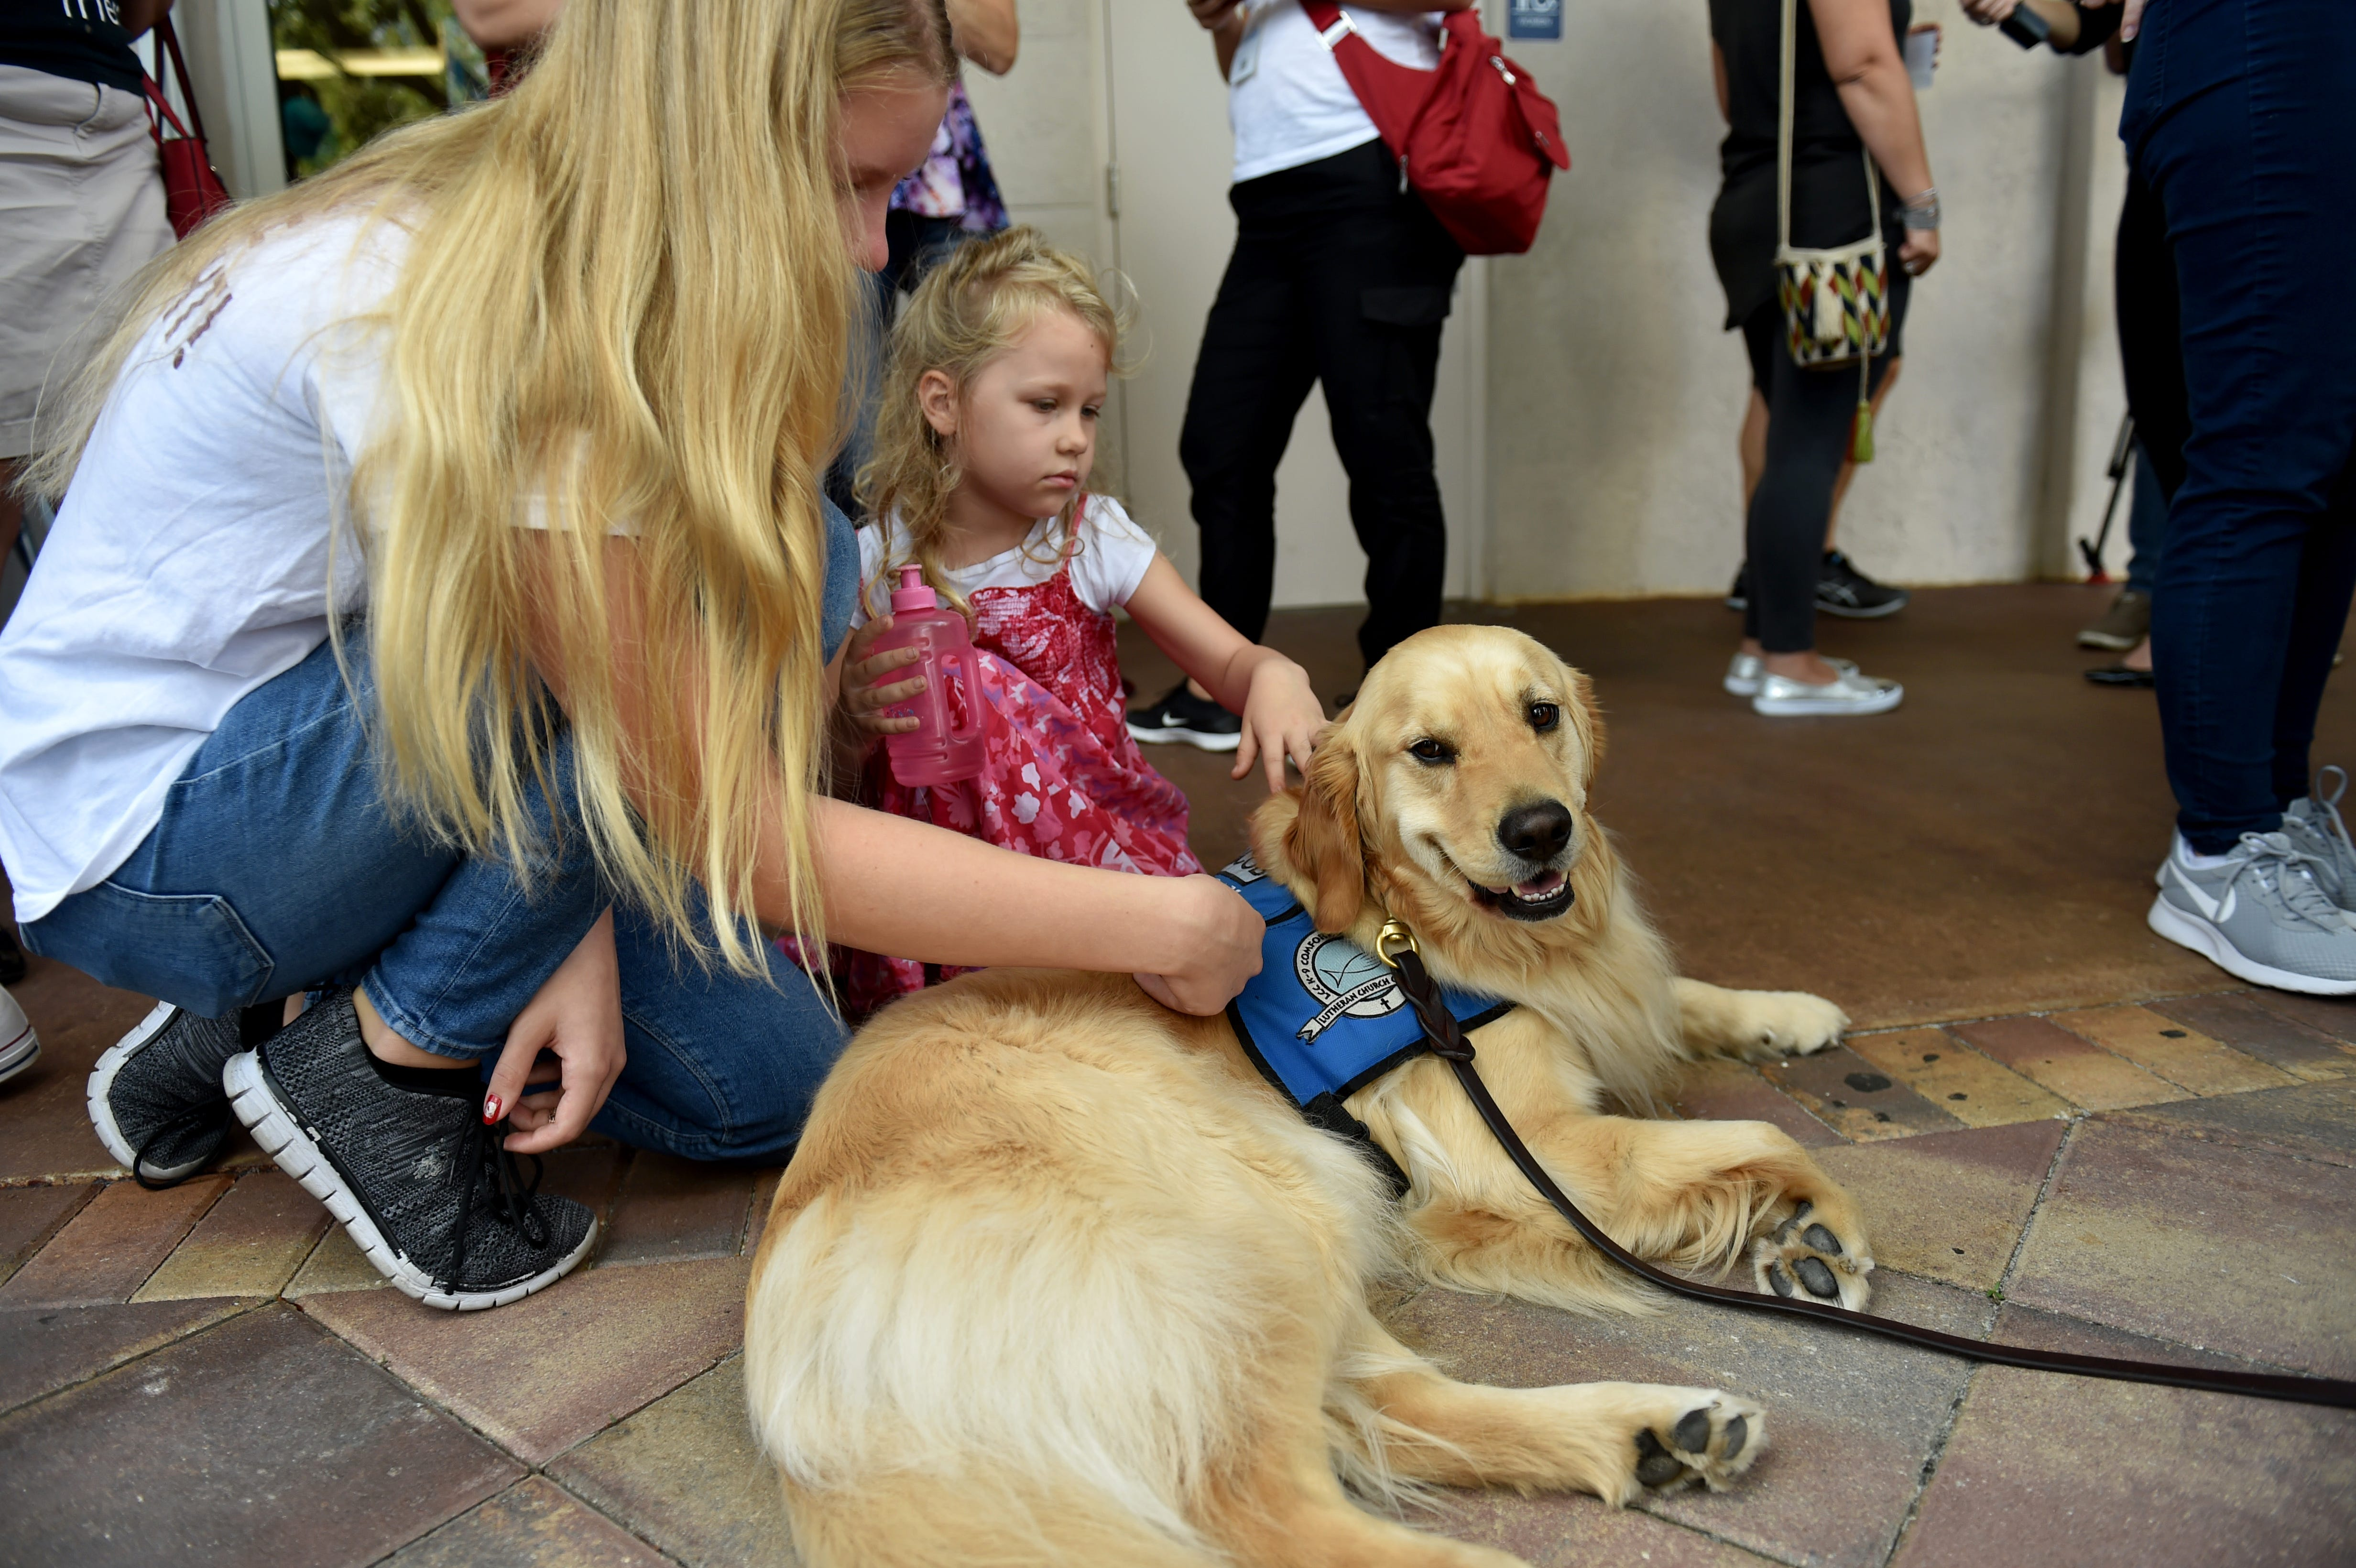 Plane Florida School Shooting Comfort Dogs Offer Support To Grieving Community Real Property Management Seacoast New Hampshire Florida School Shooting Comfort Dogs Offer Support To Community